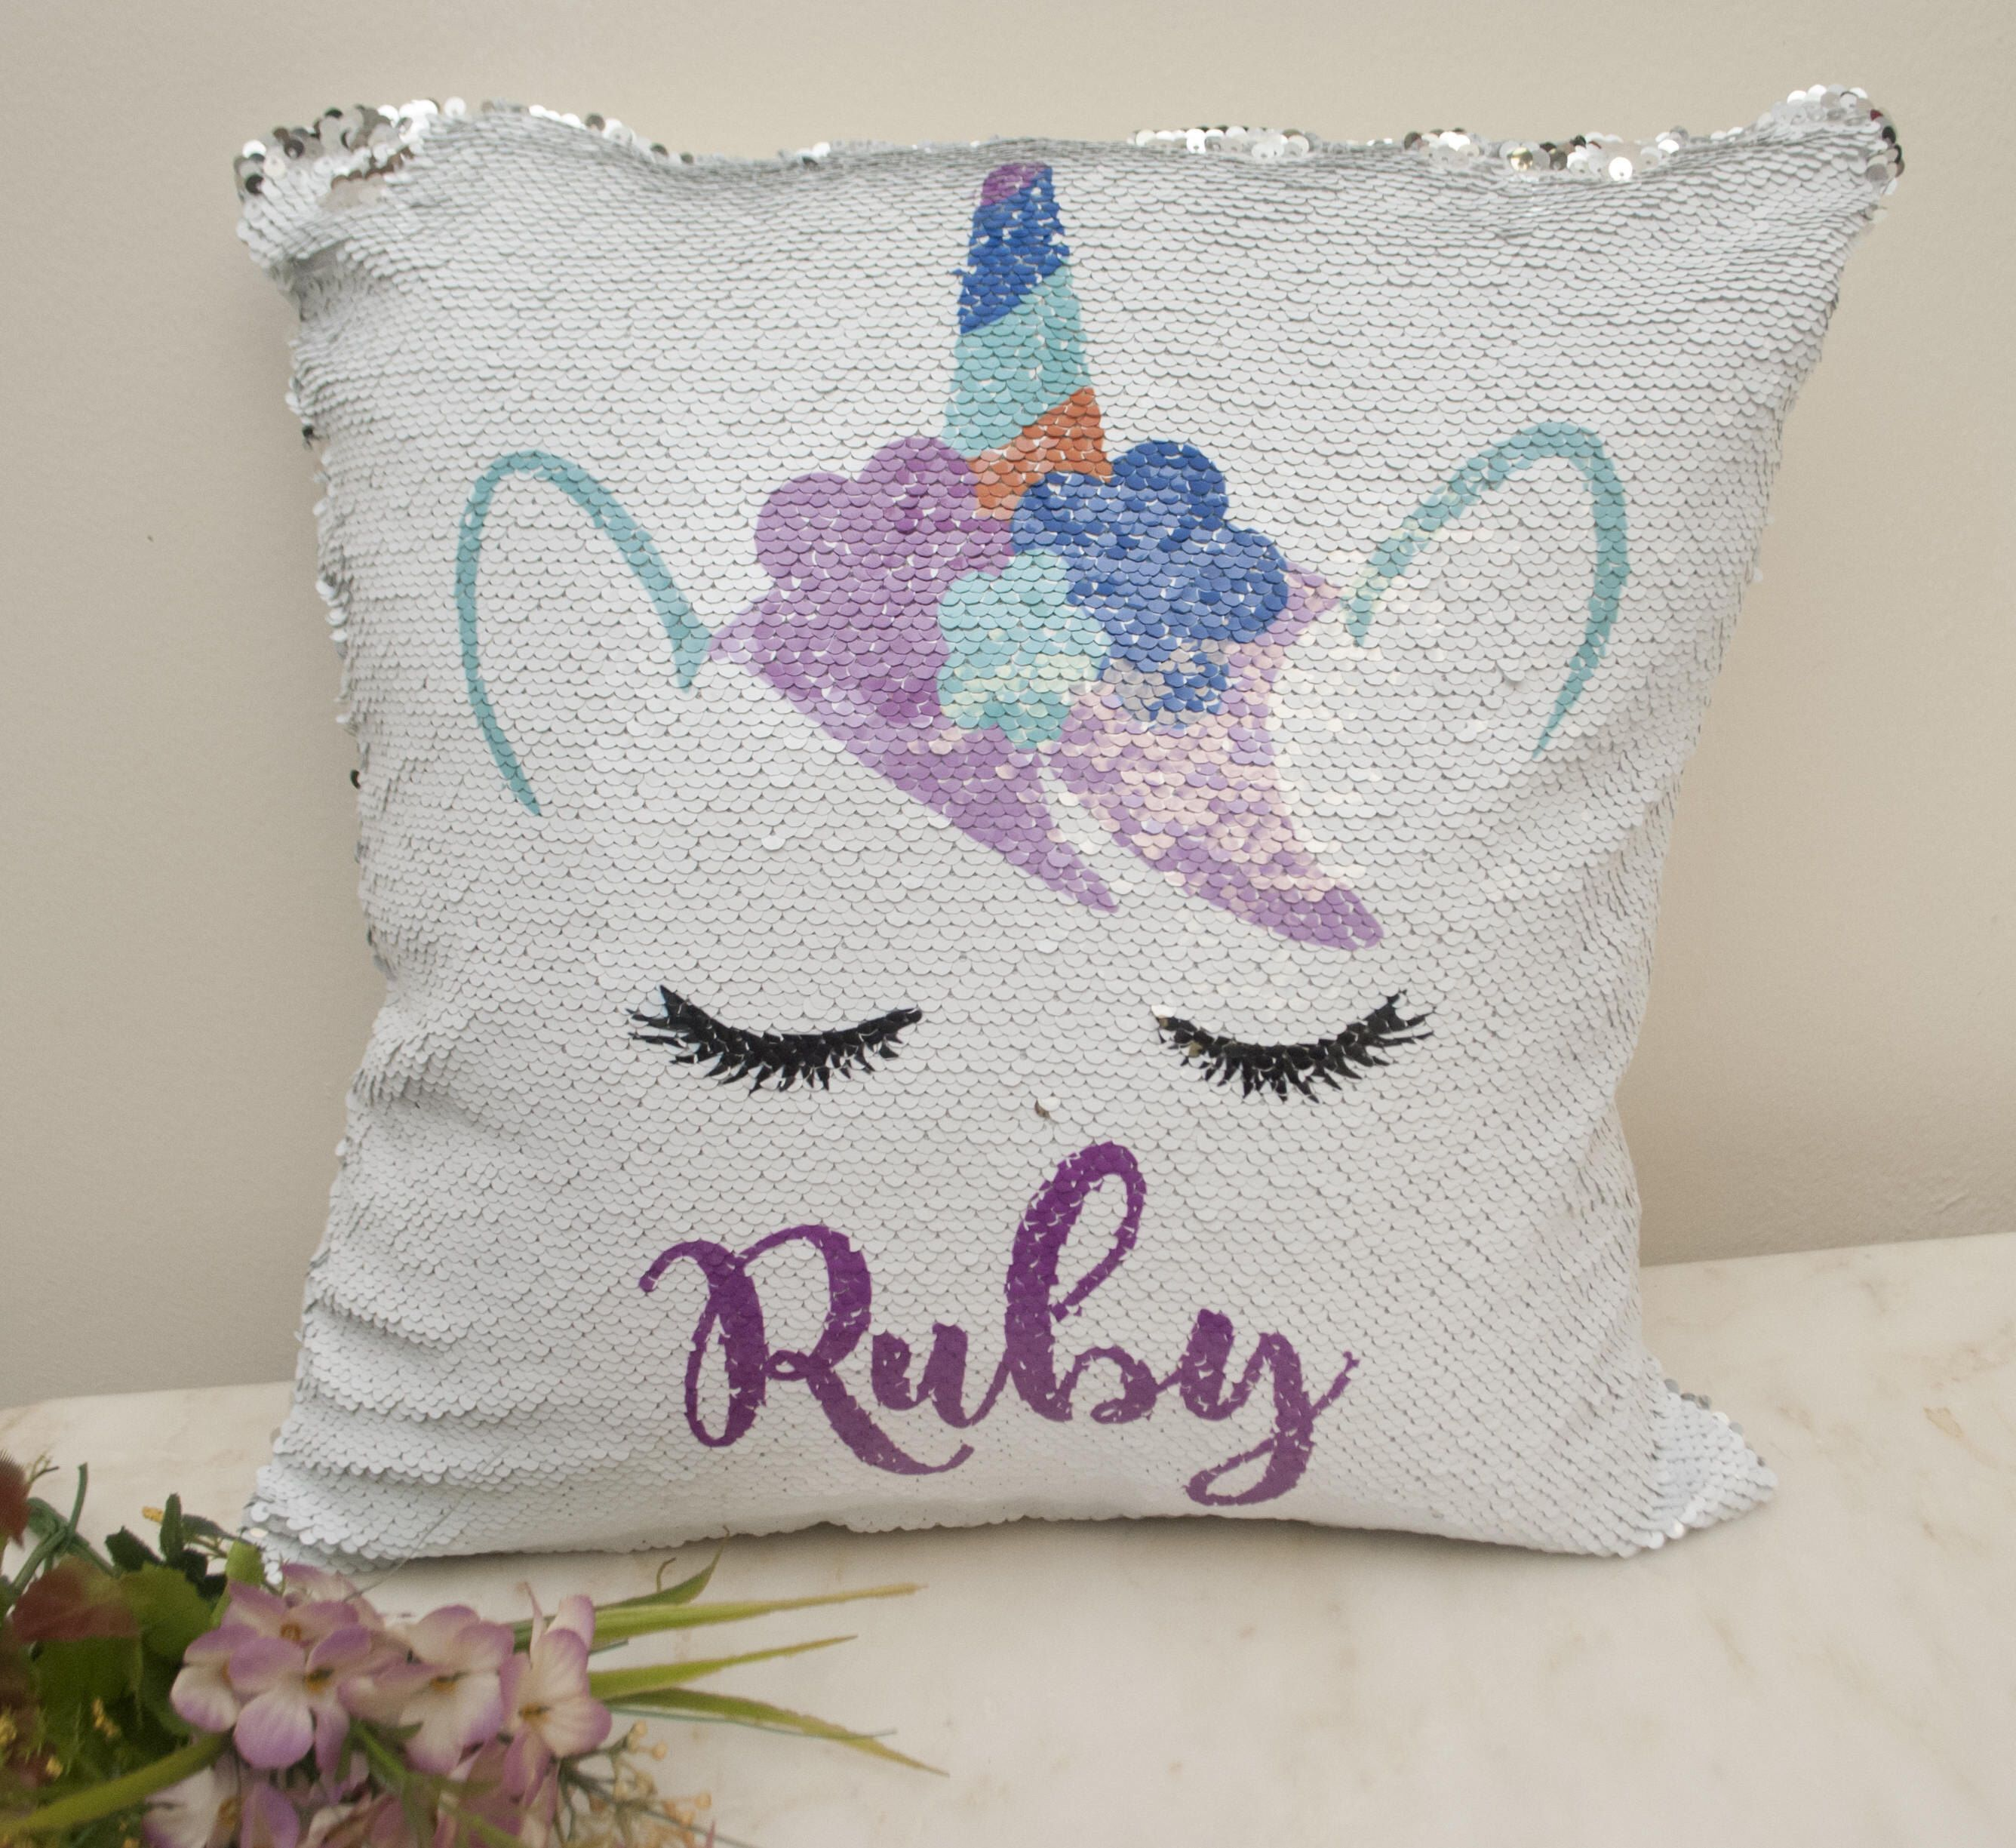 Personalized Mermaid Sequin Pillowcase Unicorn Pillow Cover Unicorn Personalized Pill Custom Pillow Cases Personalized Pillow Cases Personalized Pillow Cover